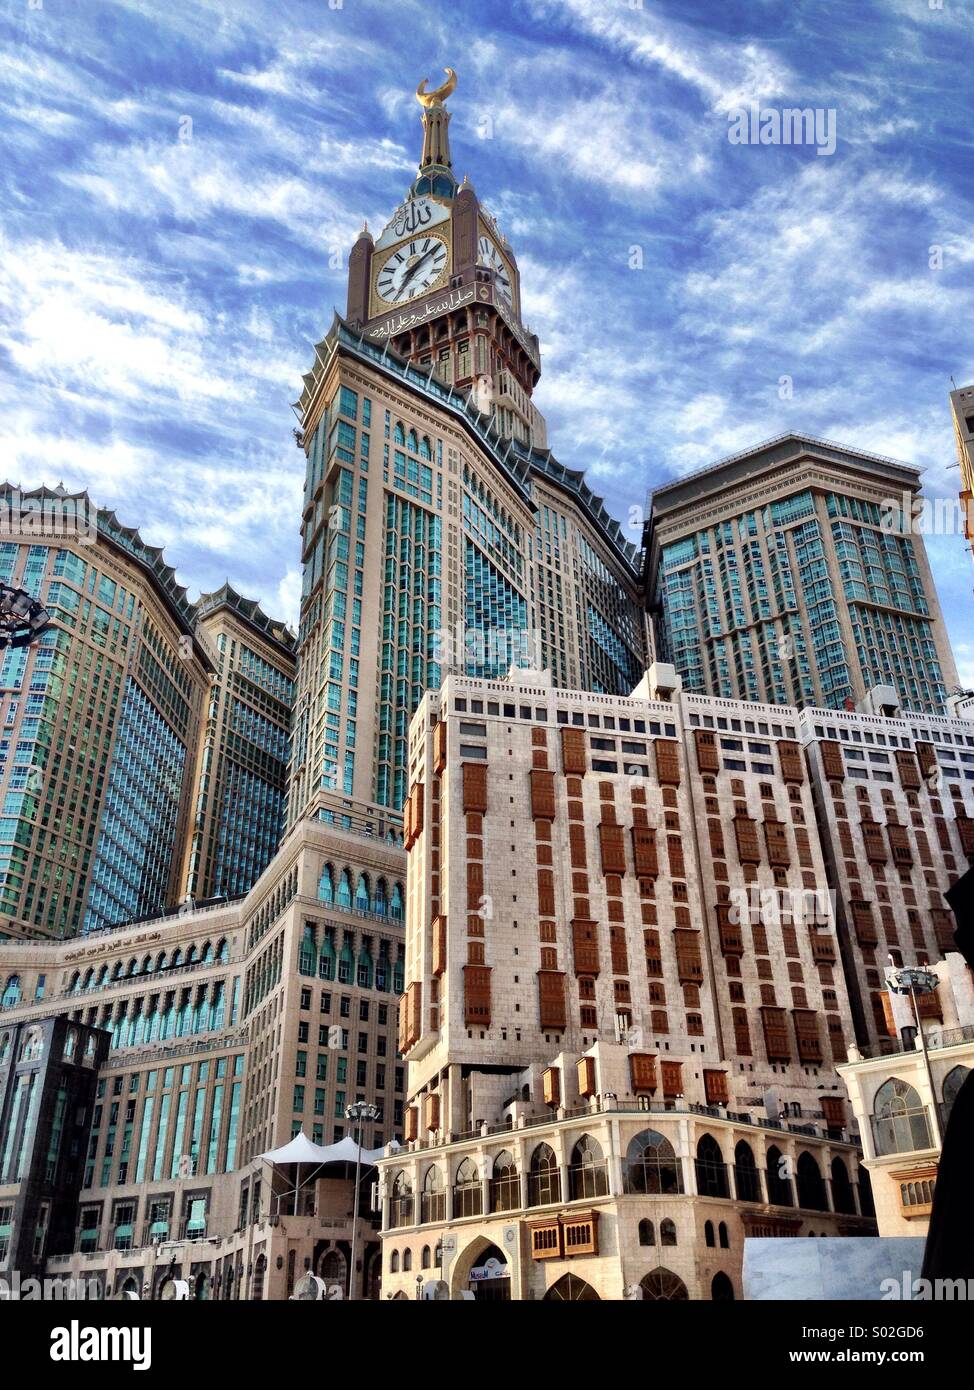 Mecca's Big Clock at Zam-Zam Tower - Stock Image